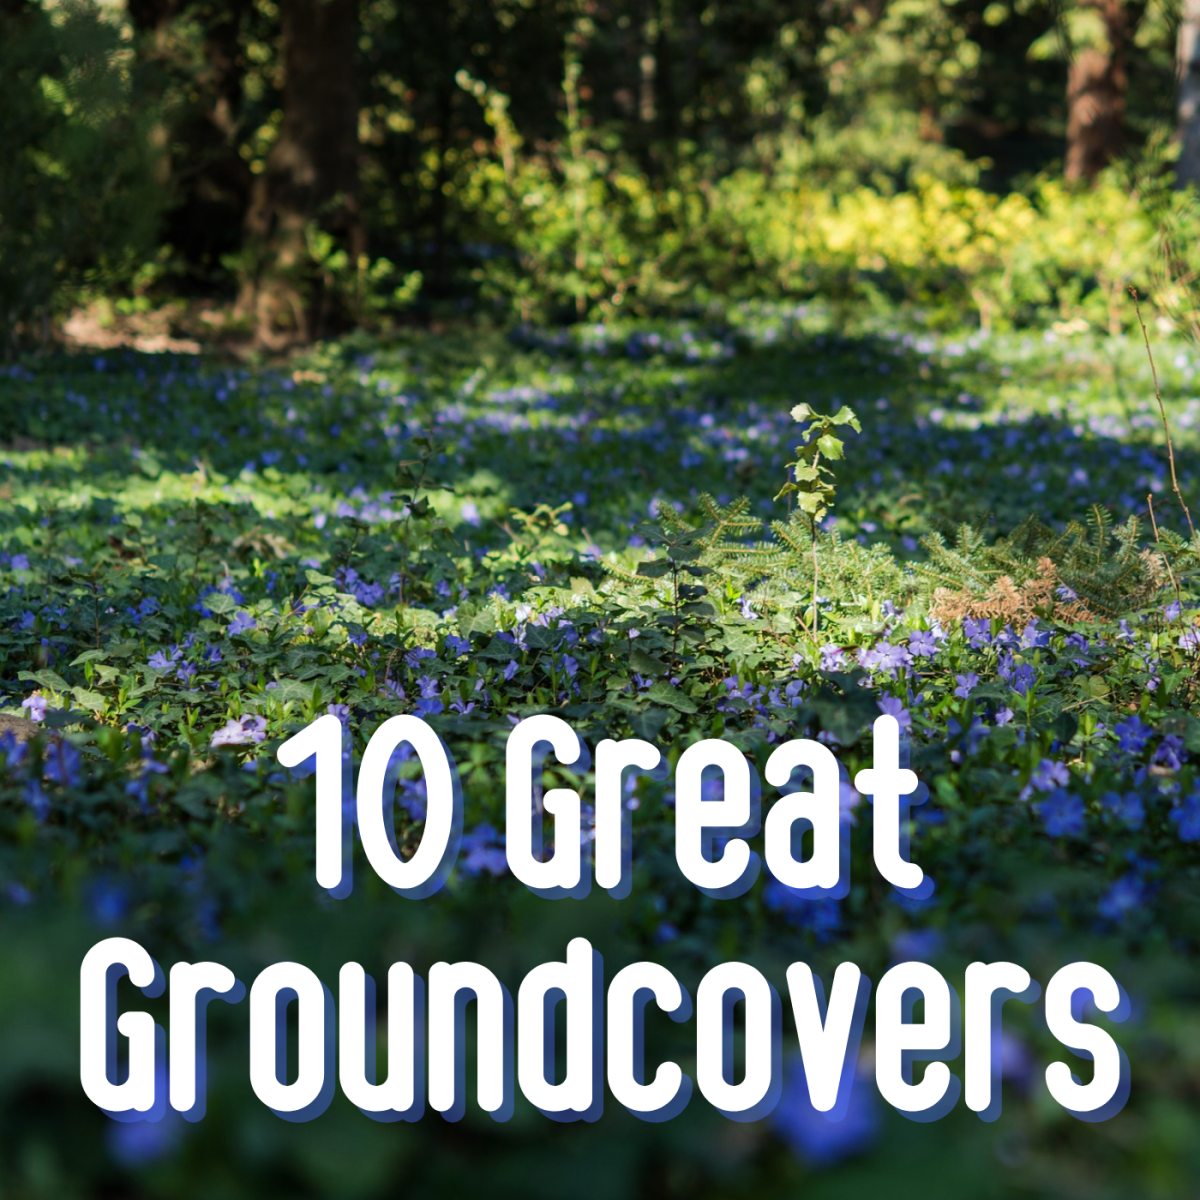 Learn about 10 diverse groundcovers to suit your garden, from flowering mats to creeping shrubs.